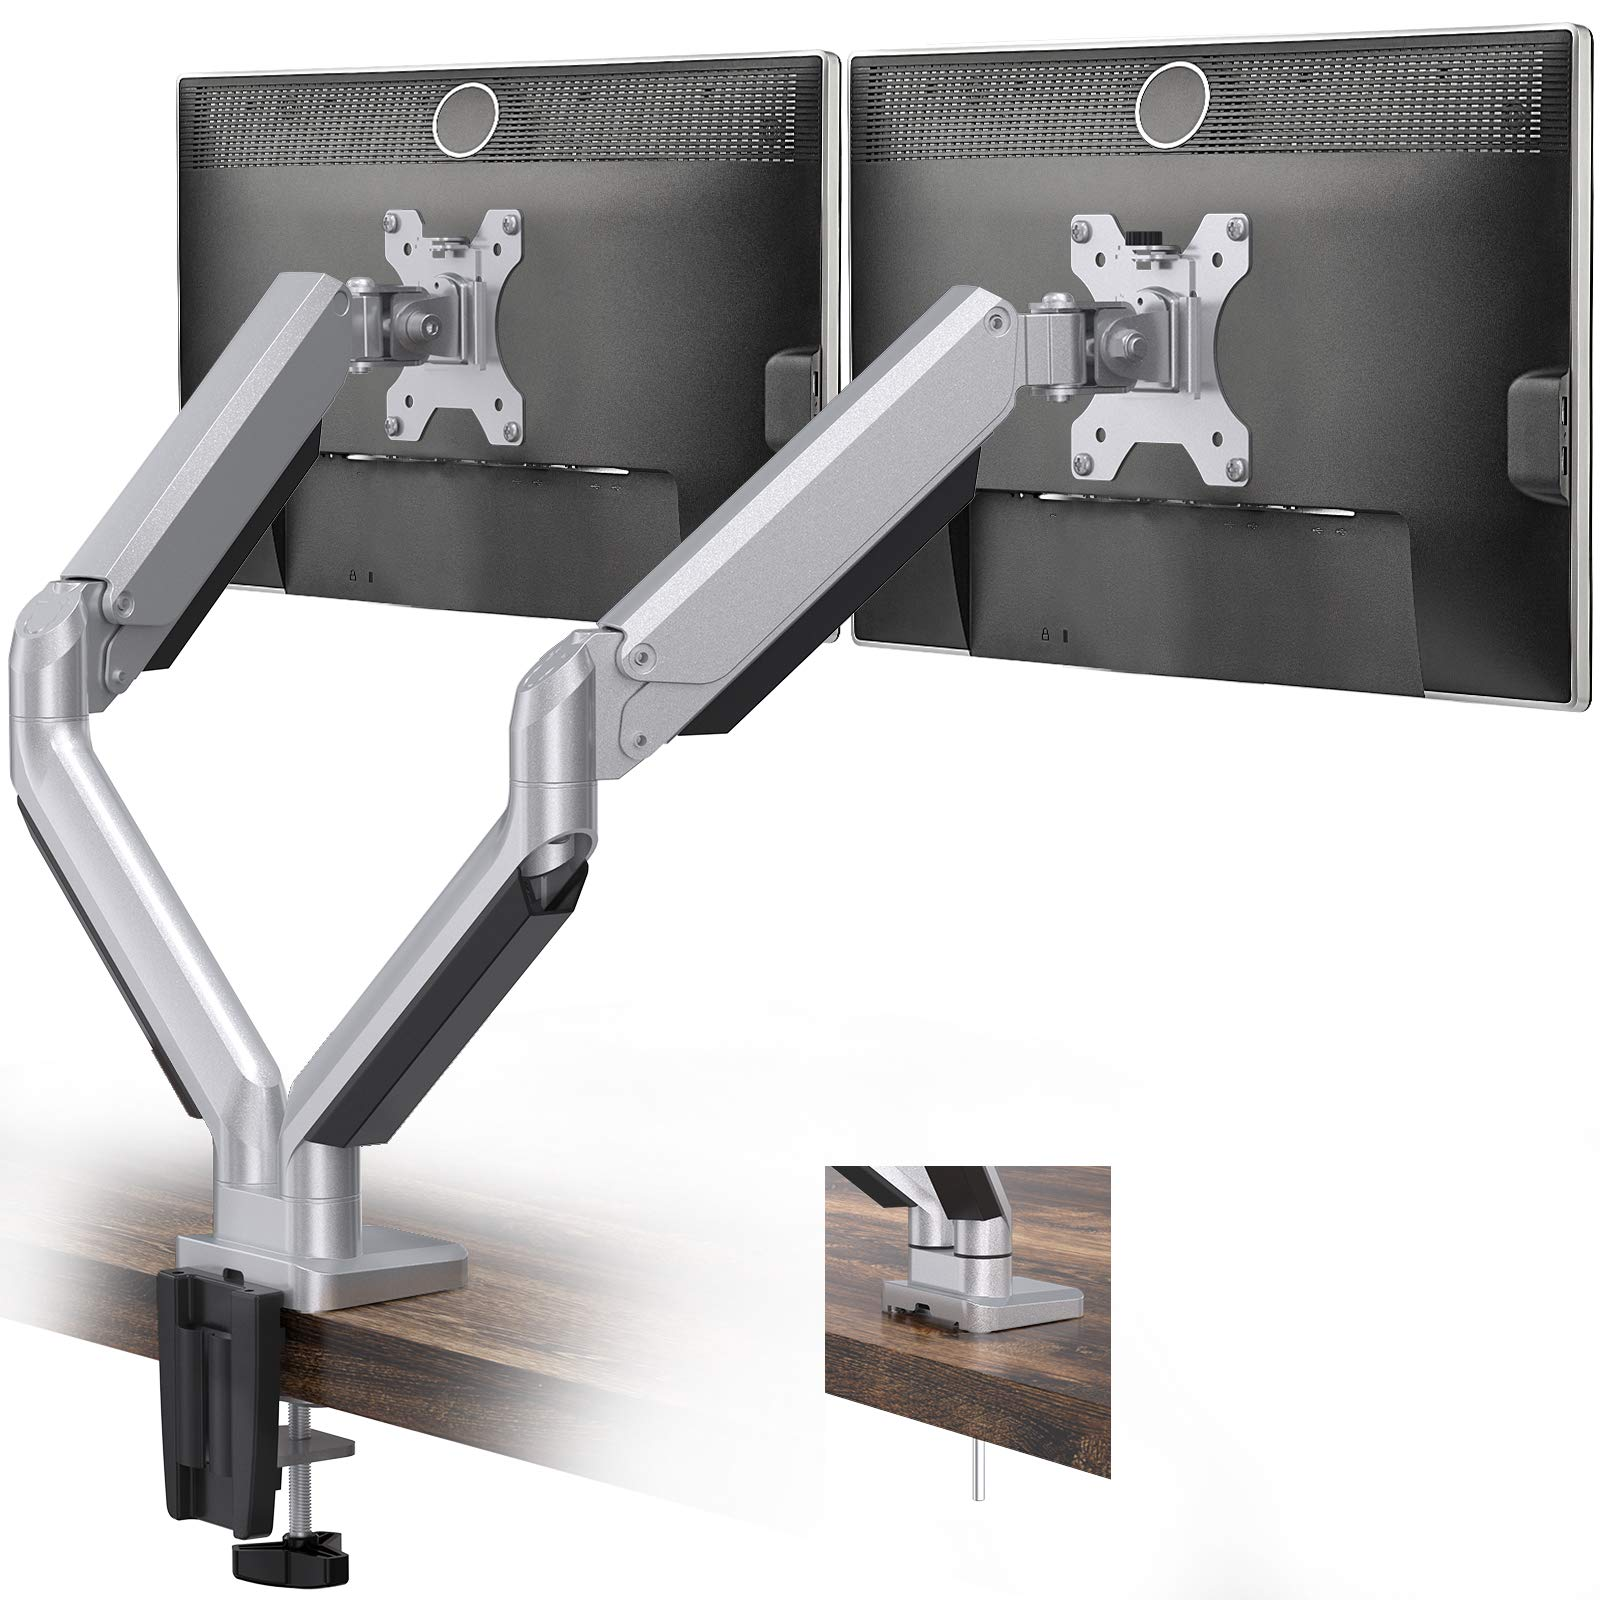 Dual Monitor Mount Stand - Height Adjustable Gas Spring Monitor Desk Mount Swivel VESA Bracket Fit Two 17 to 32 Inch Computer Screens with Clamp, Grommet Mounting Base, Each Arm Holds up to 17.6lbs